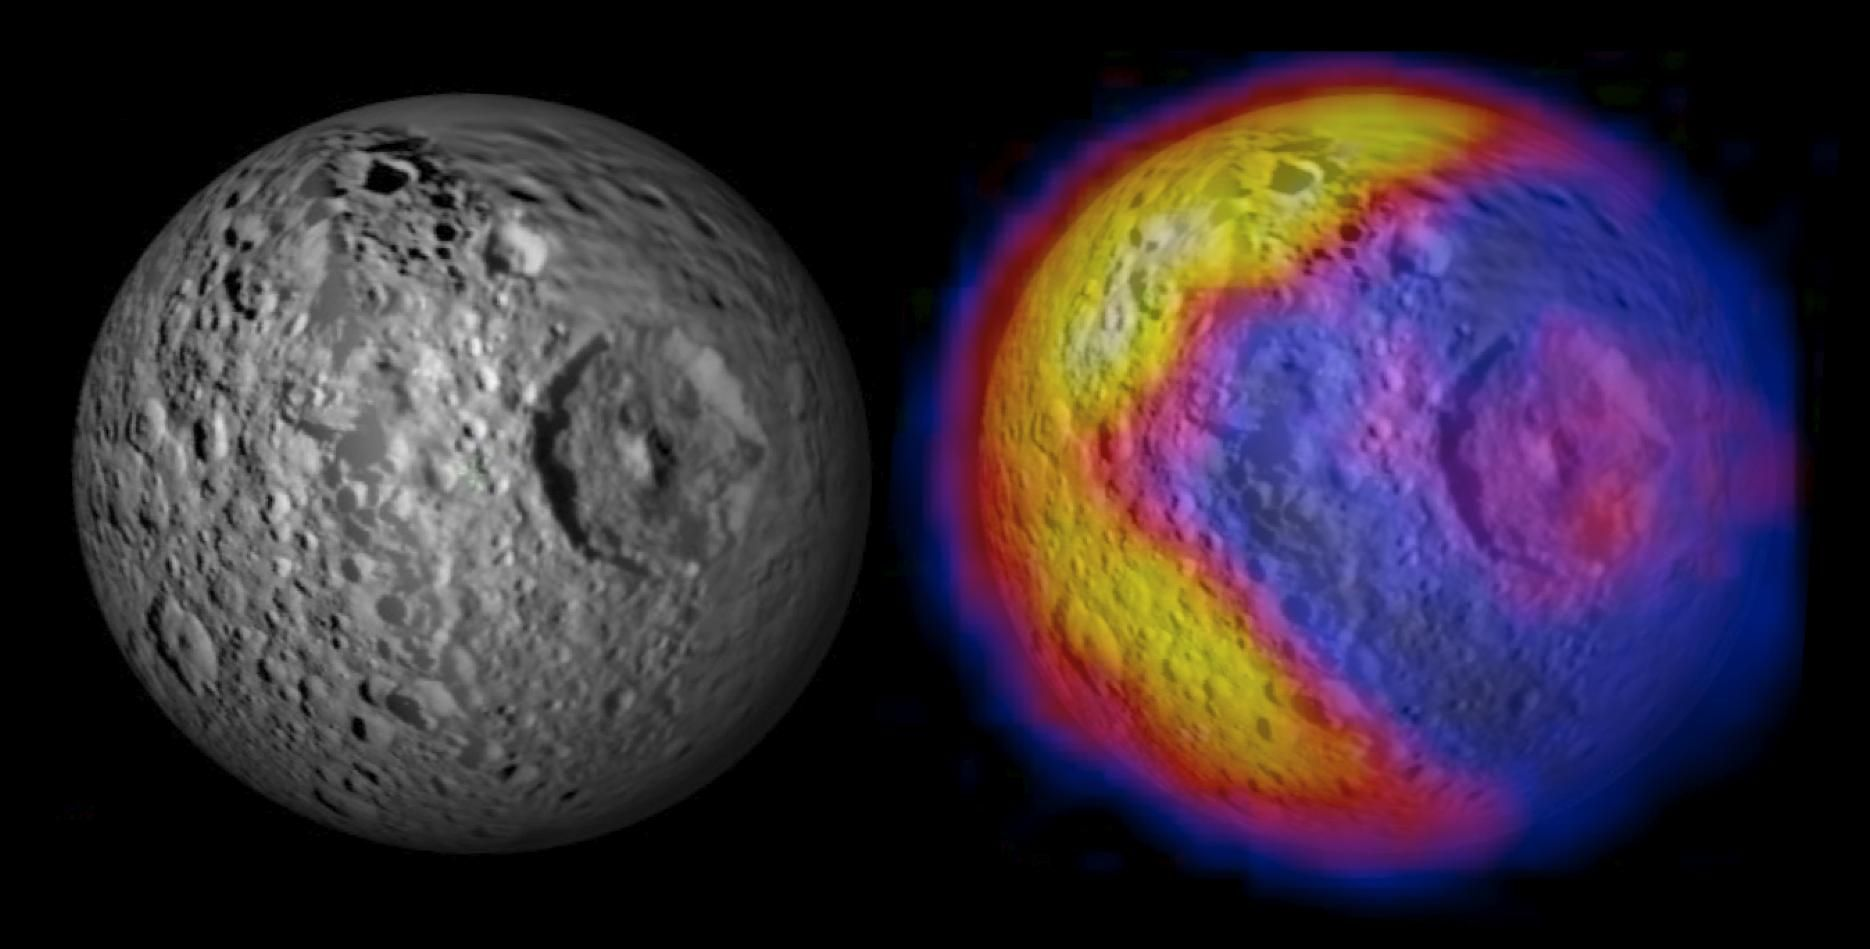 Mimas Moon Fun Facts This Figure Illustrates The Unexpected And Bizarre Pac Man